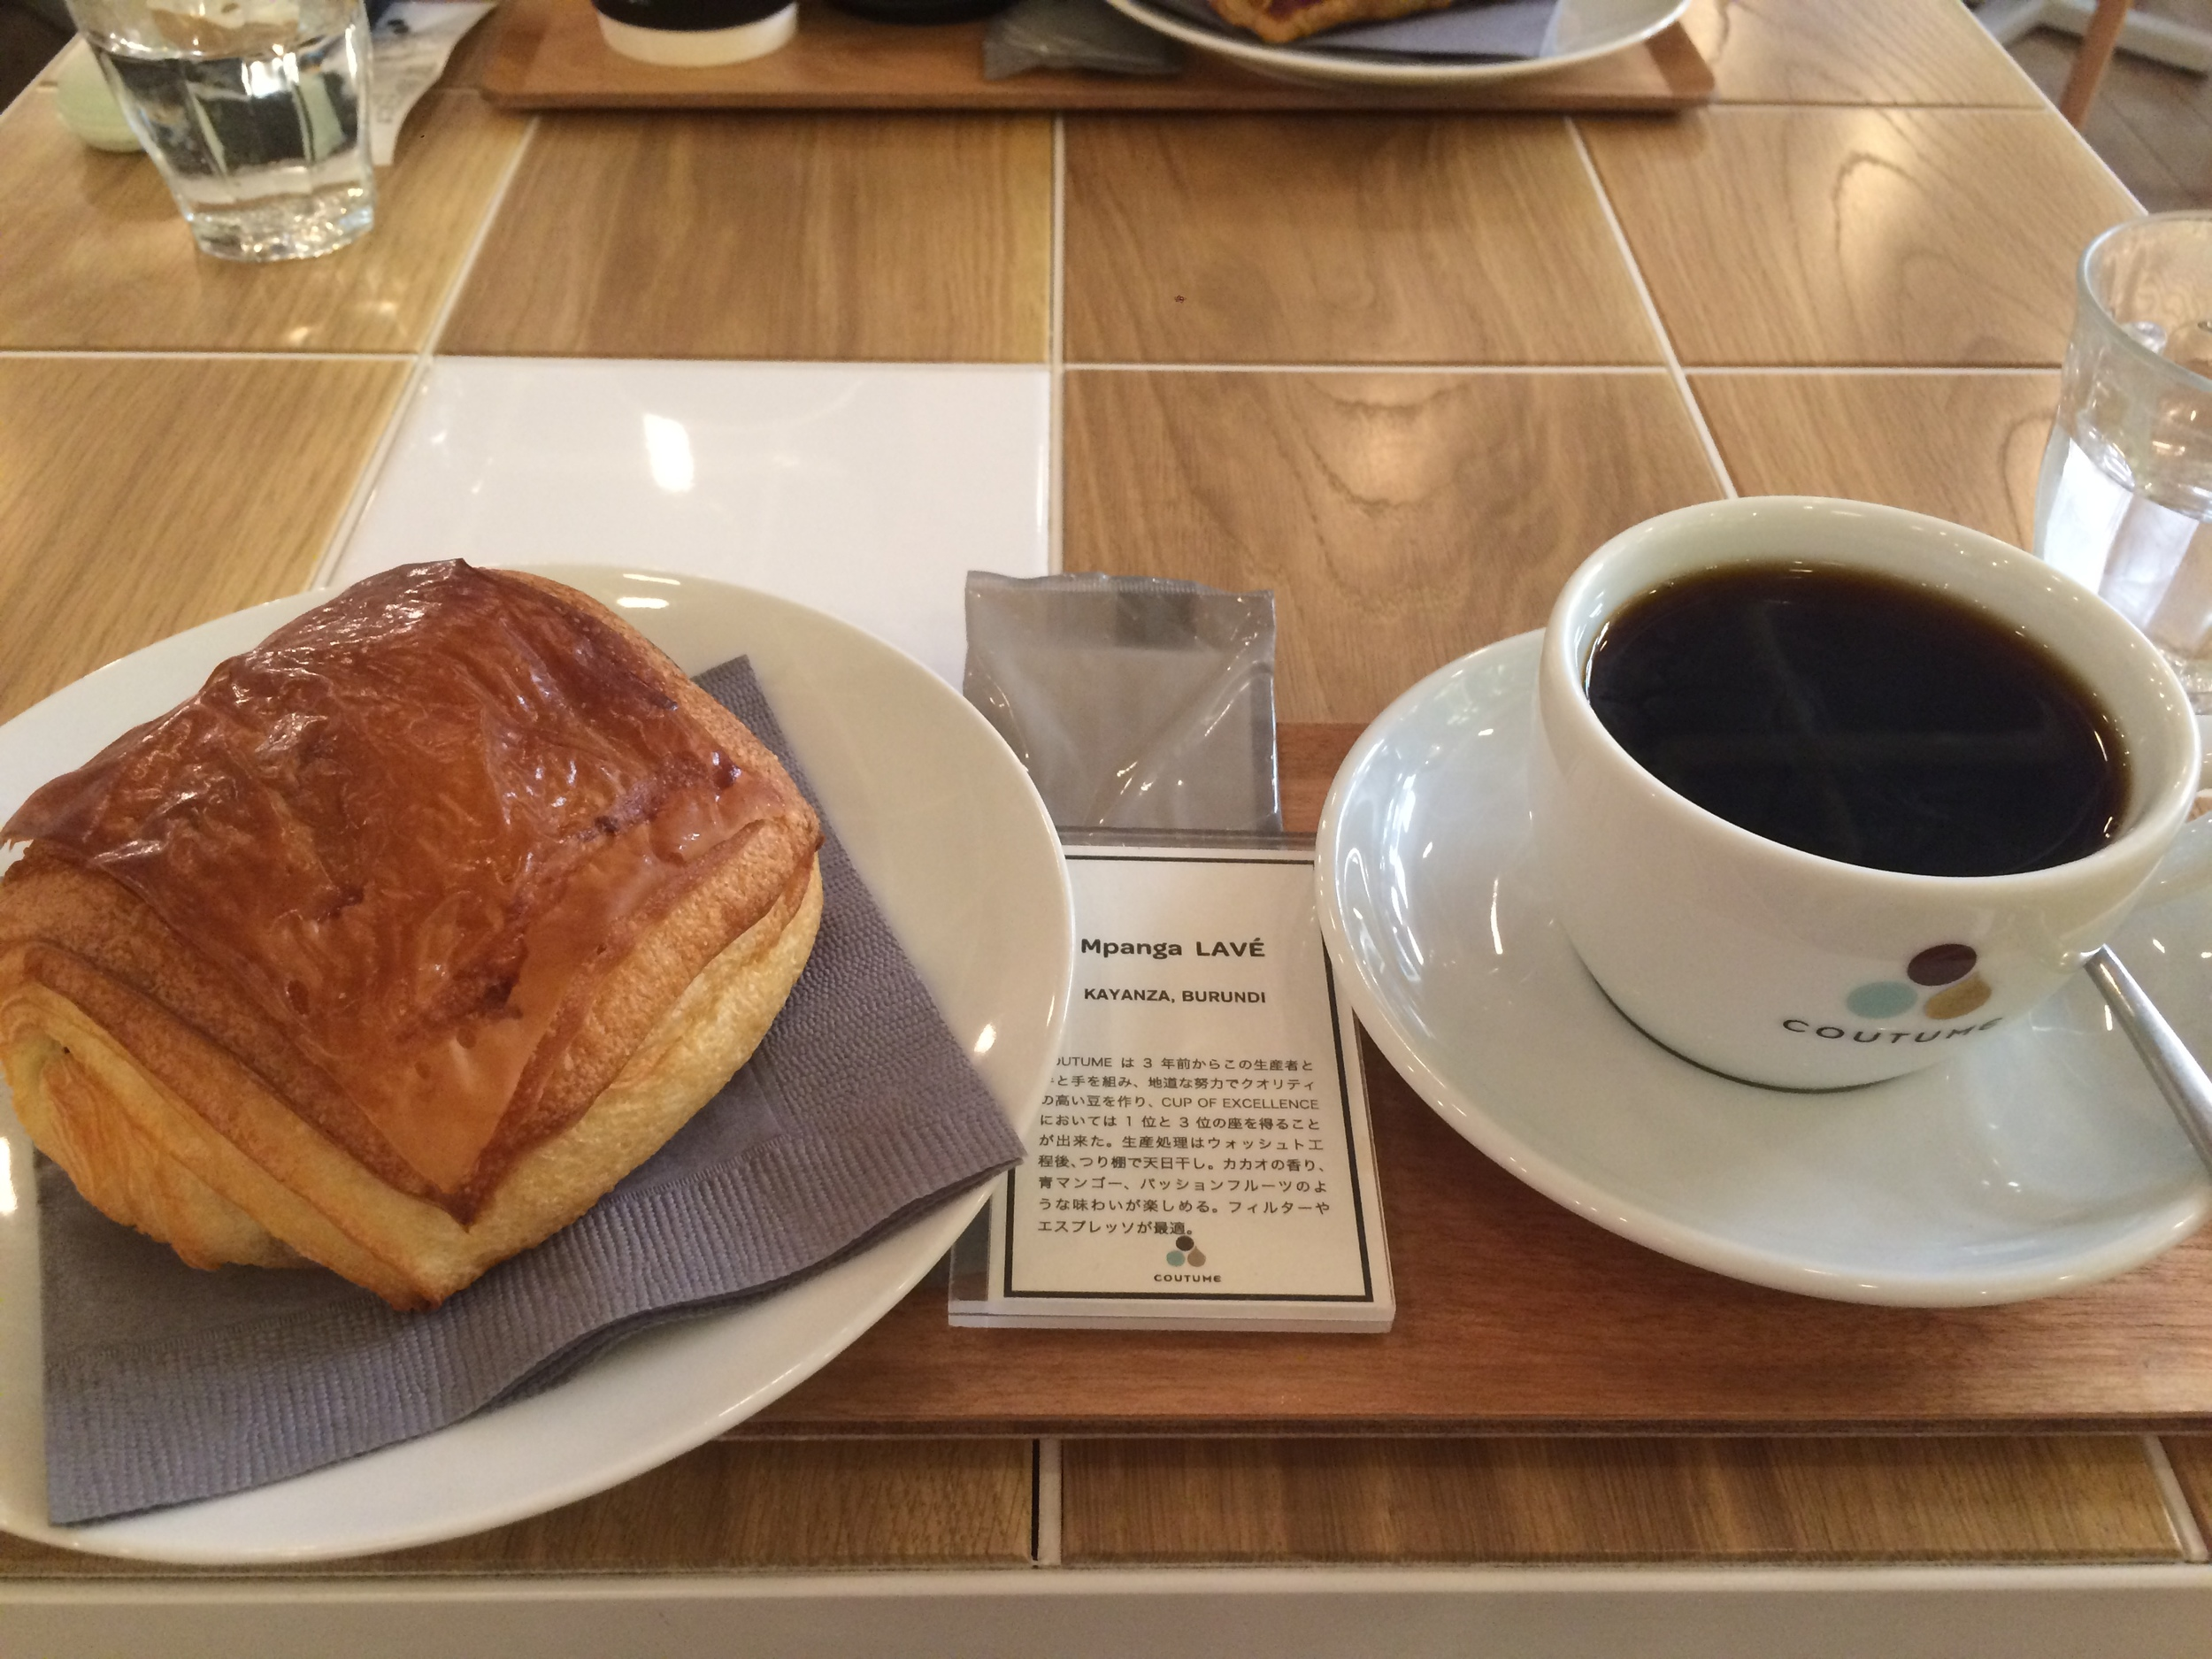 Coutume Coffee and Pain au Chocolat, Tokyo